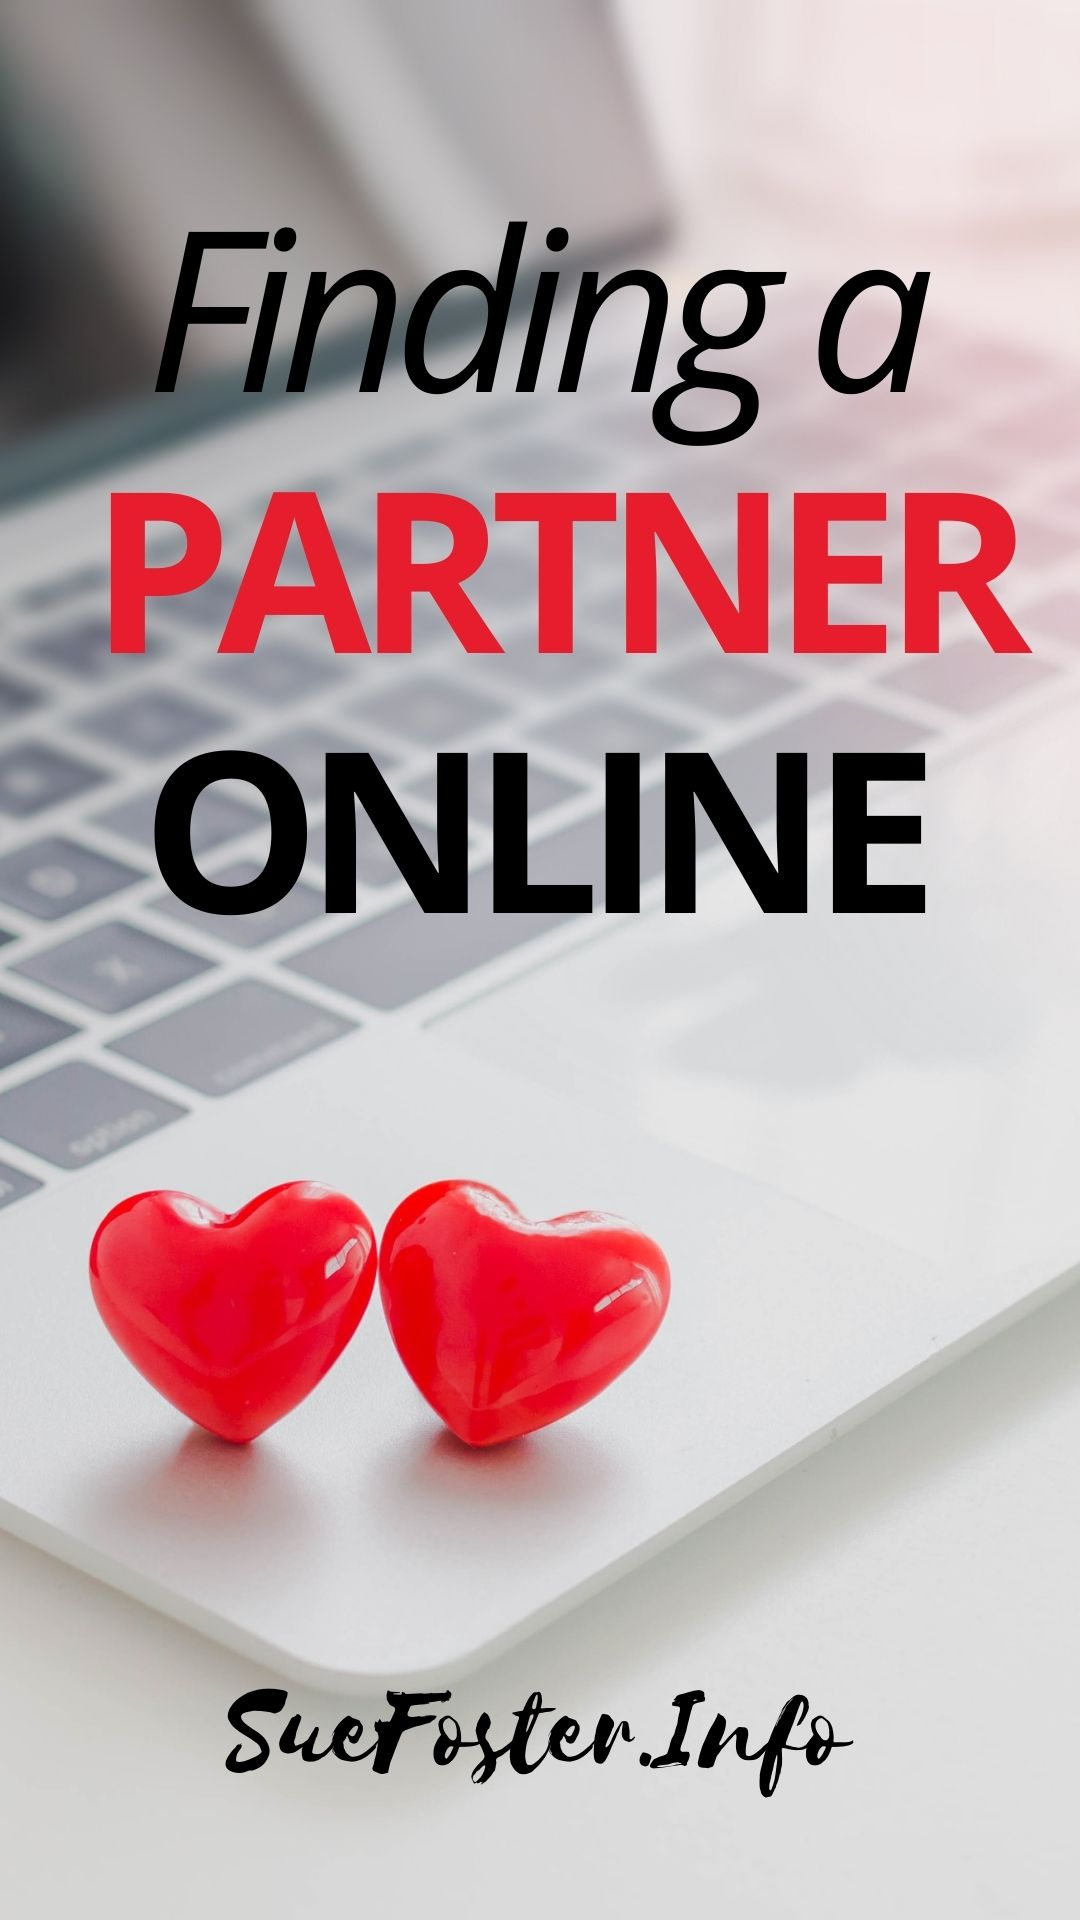 The pandemic not only restricted ways of dating and made the Internet the dating site for most singles. It also provided time to reflect and change dating attitudes.